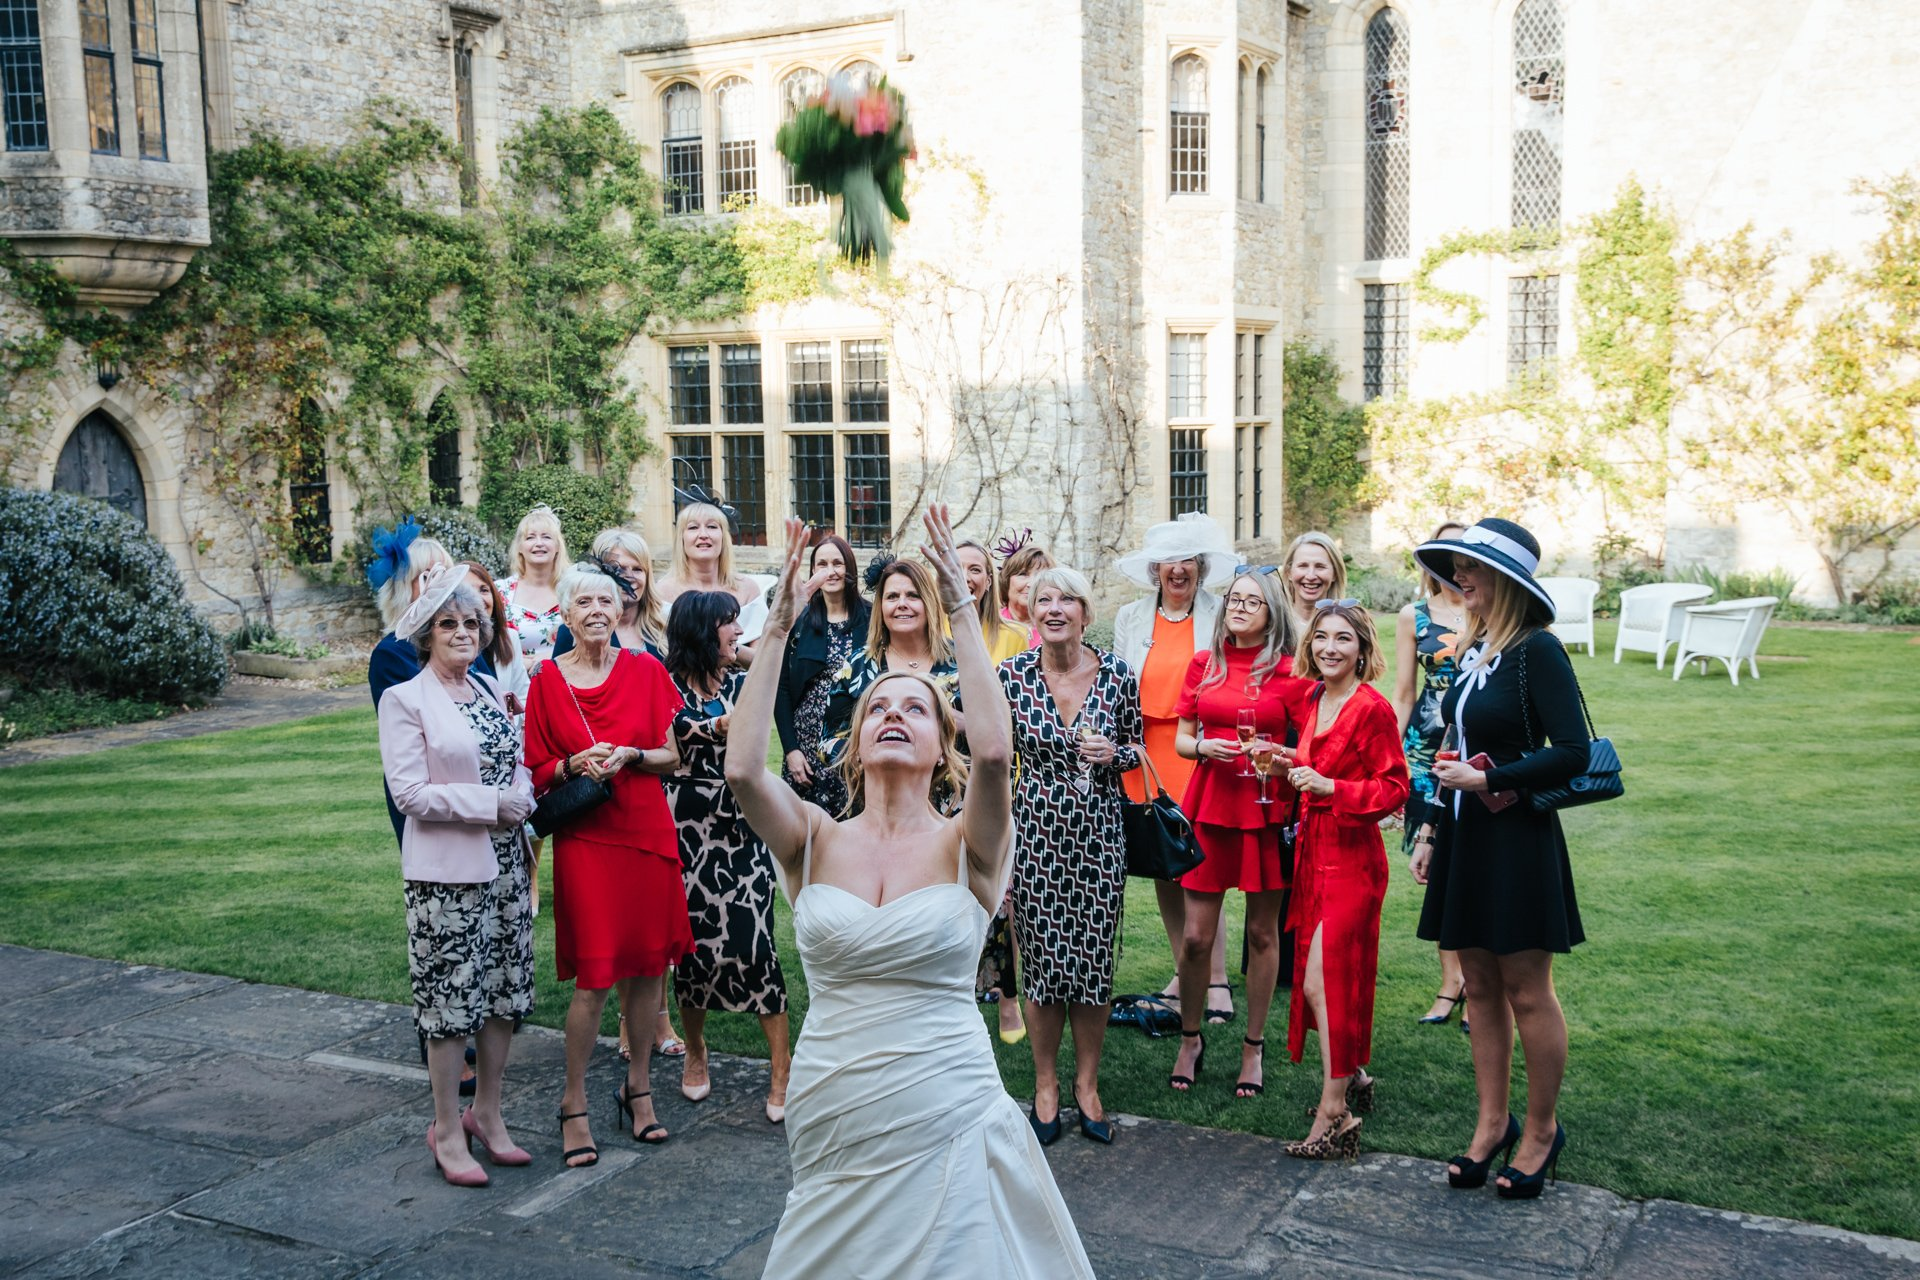 Bride throws her bouquet to her friends in the Courtyard at Allington Castle